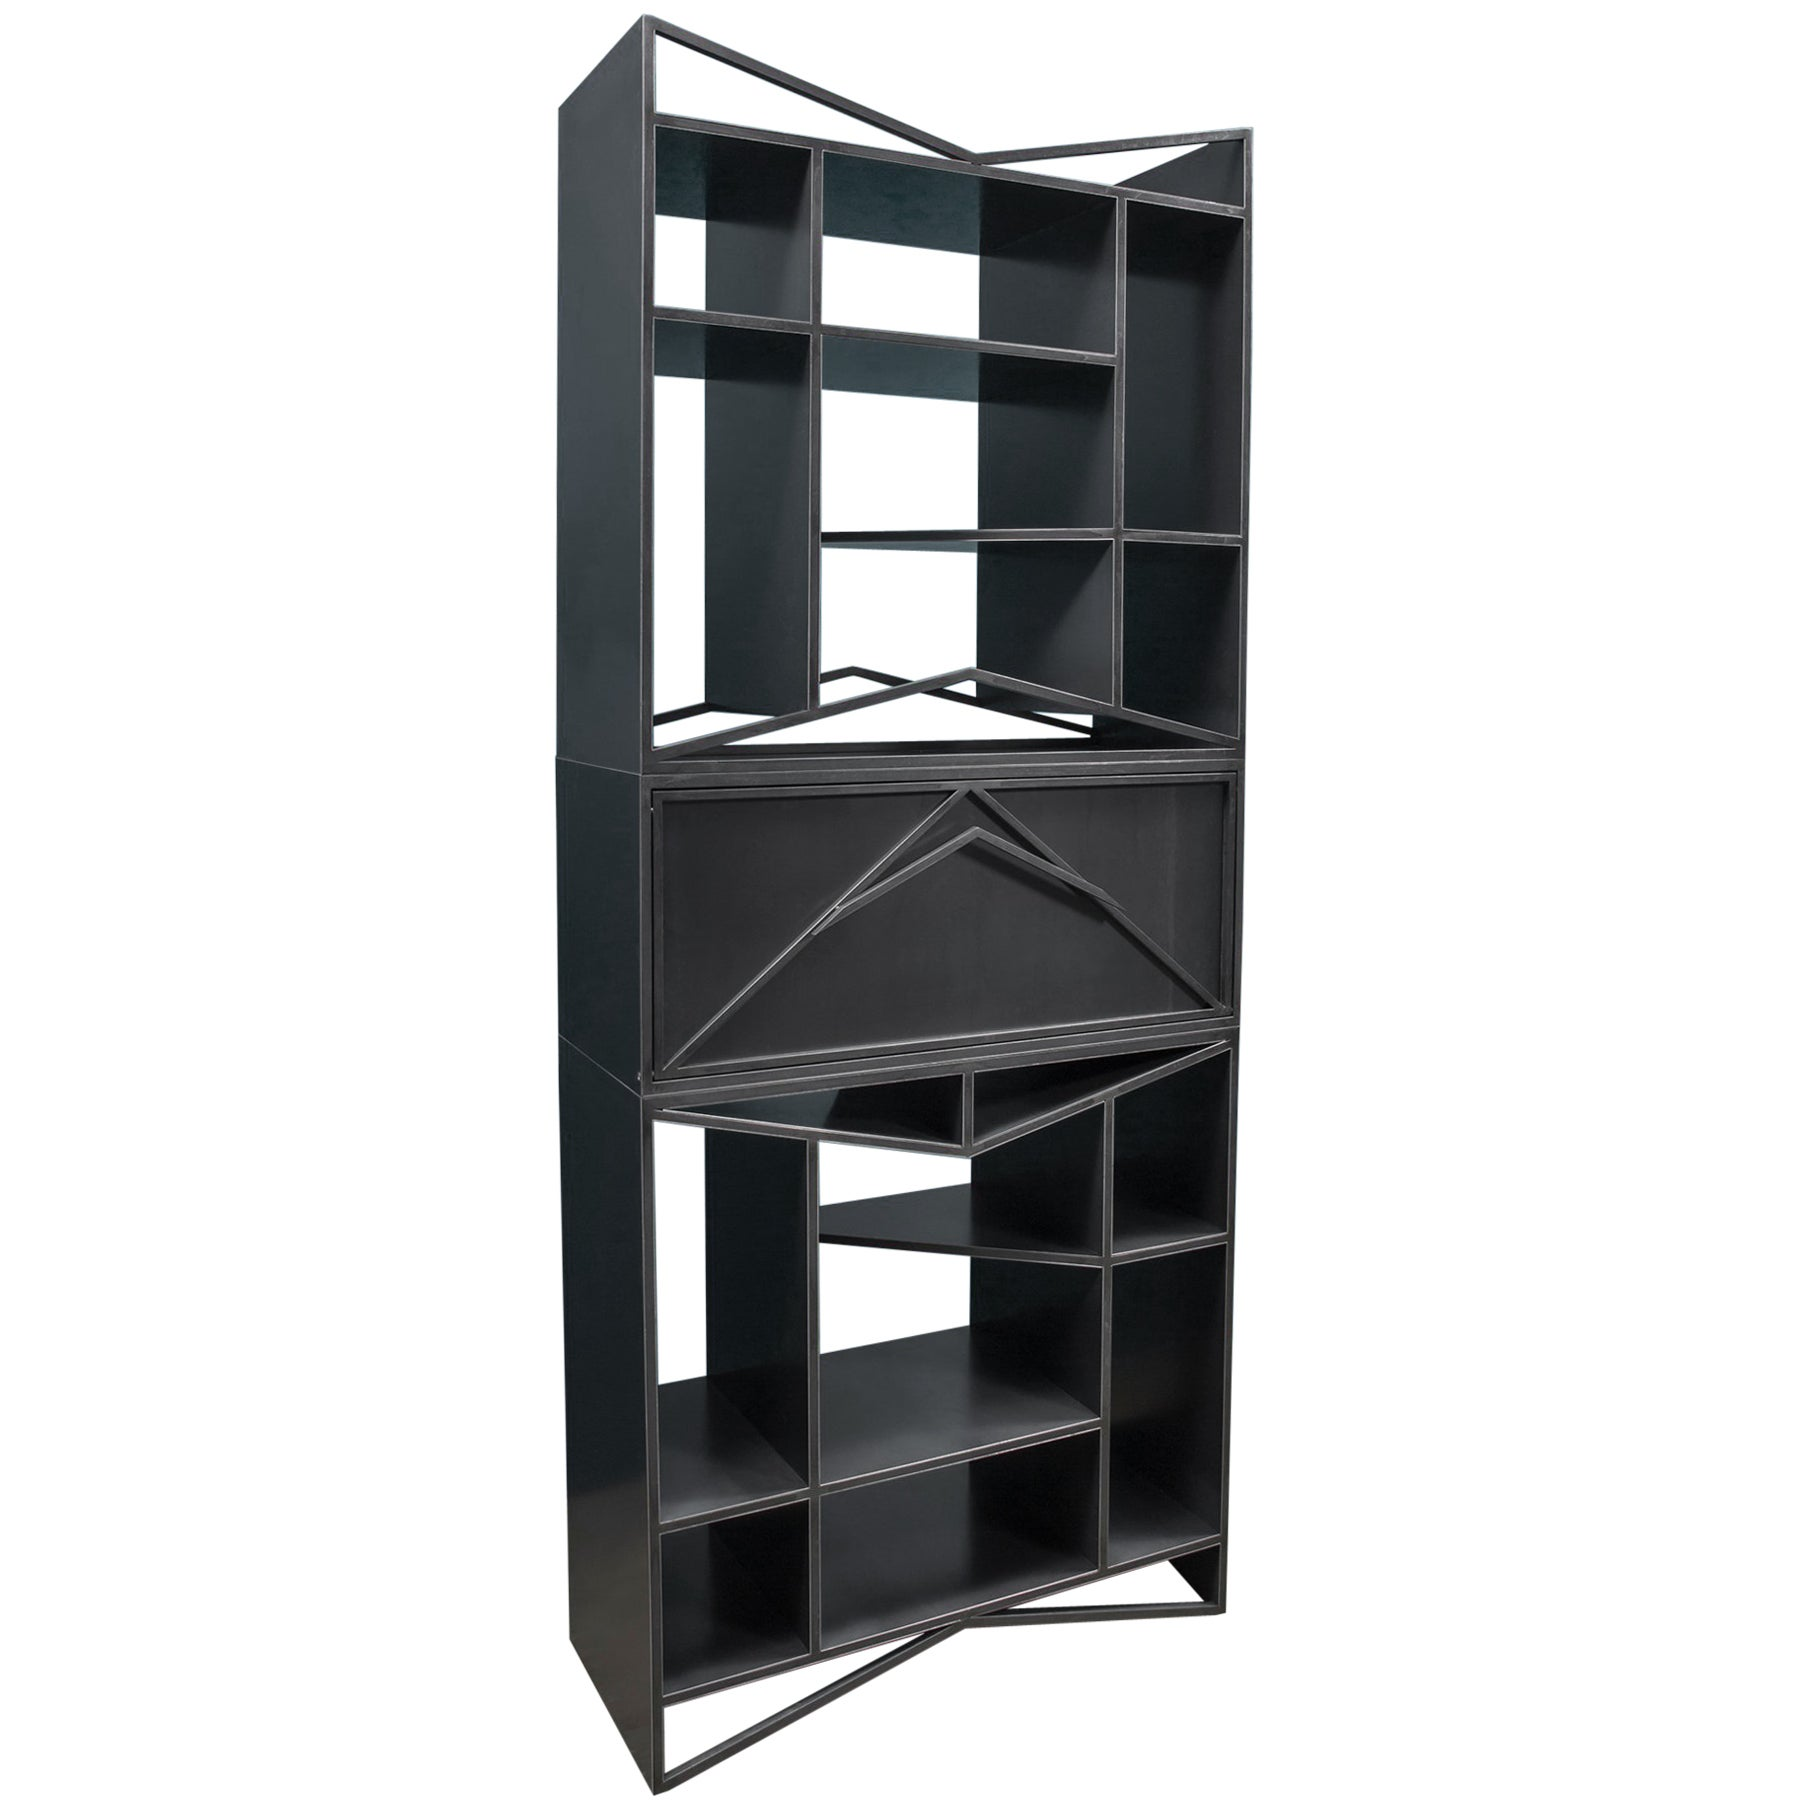 Vertical Steel Etagere Bookcase Trio Meridian Modular Credenza By Force Collide